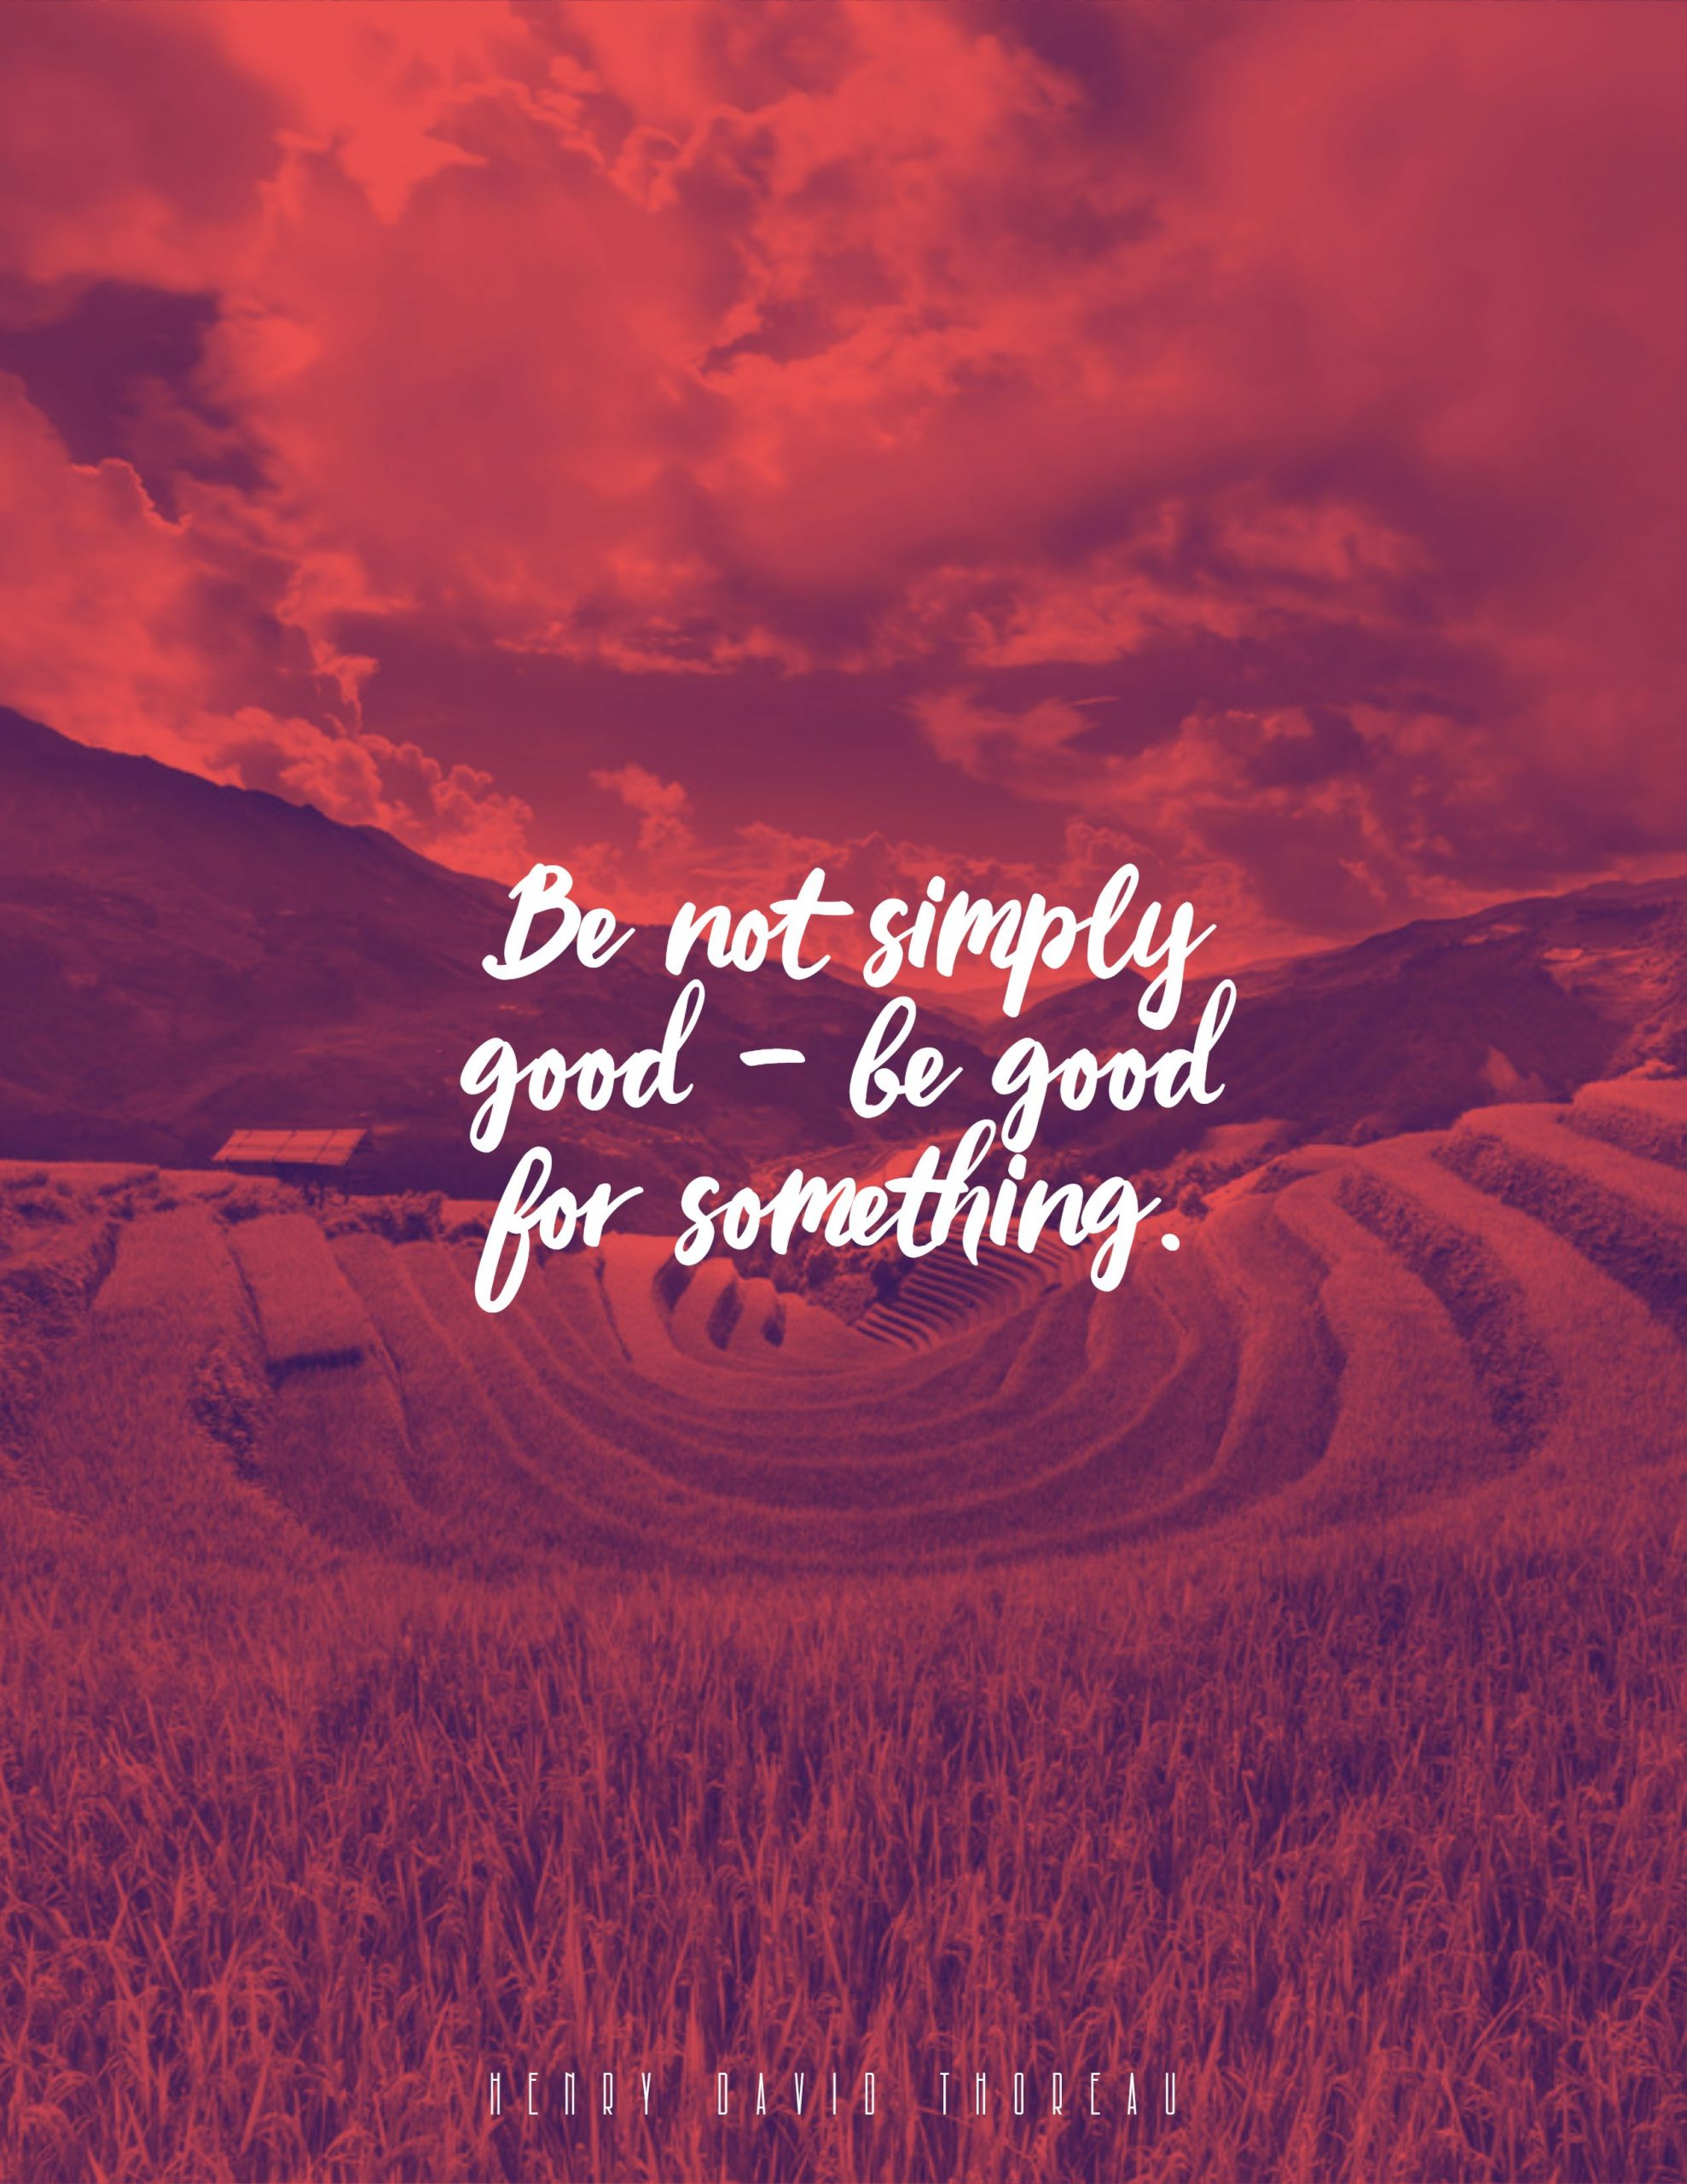 Quotes image of Be not simply good - be good for something.